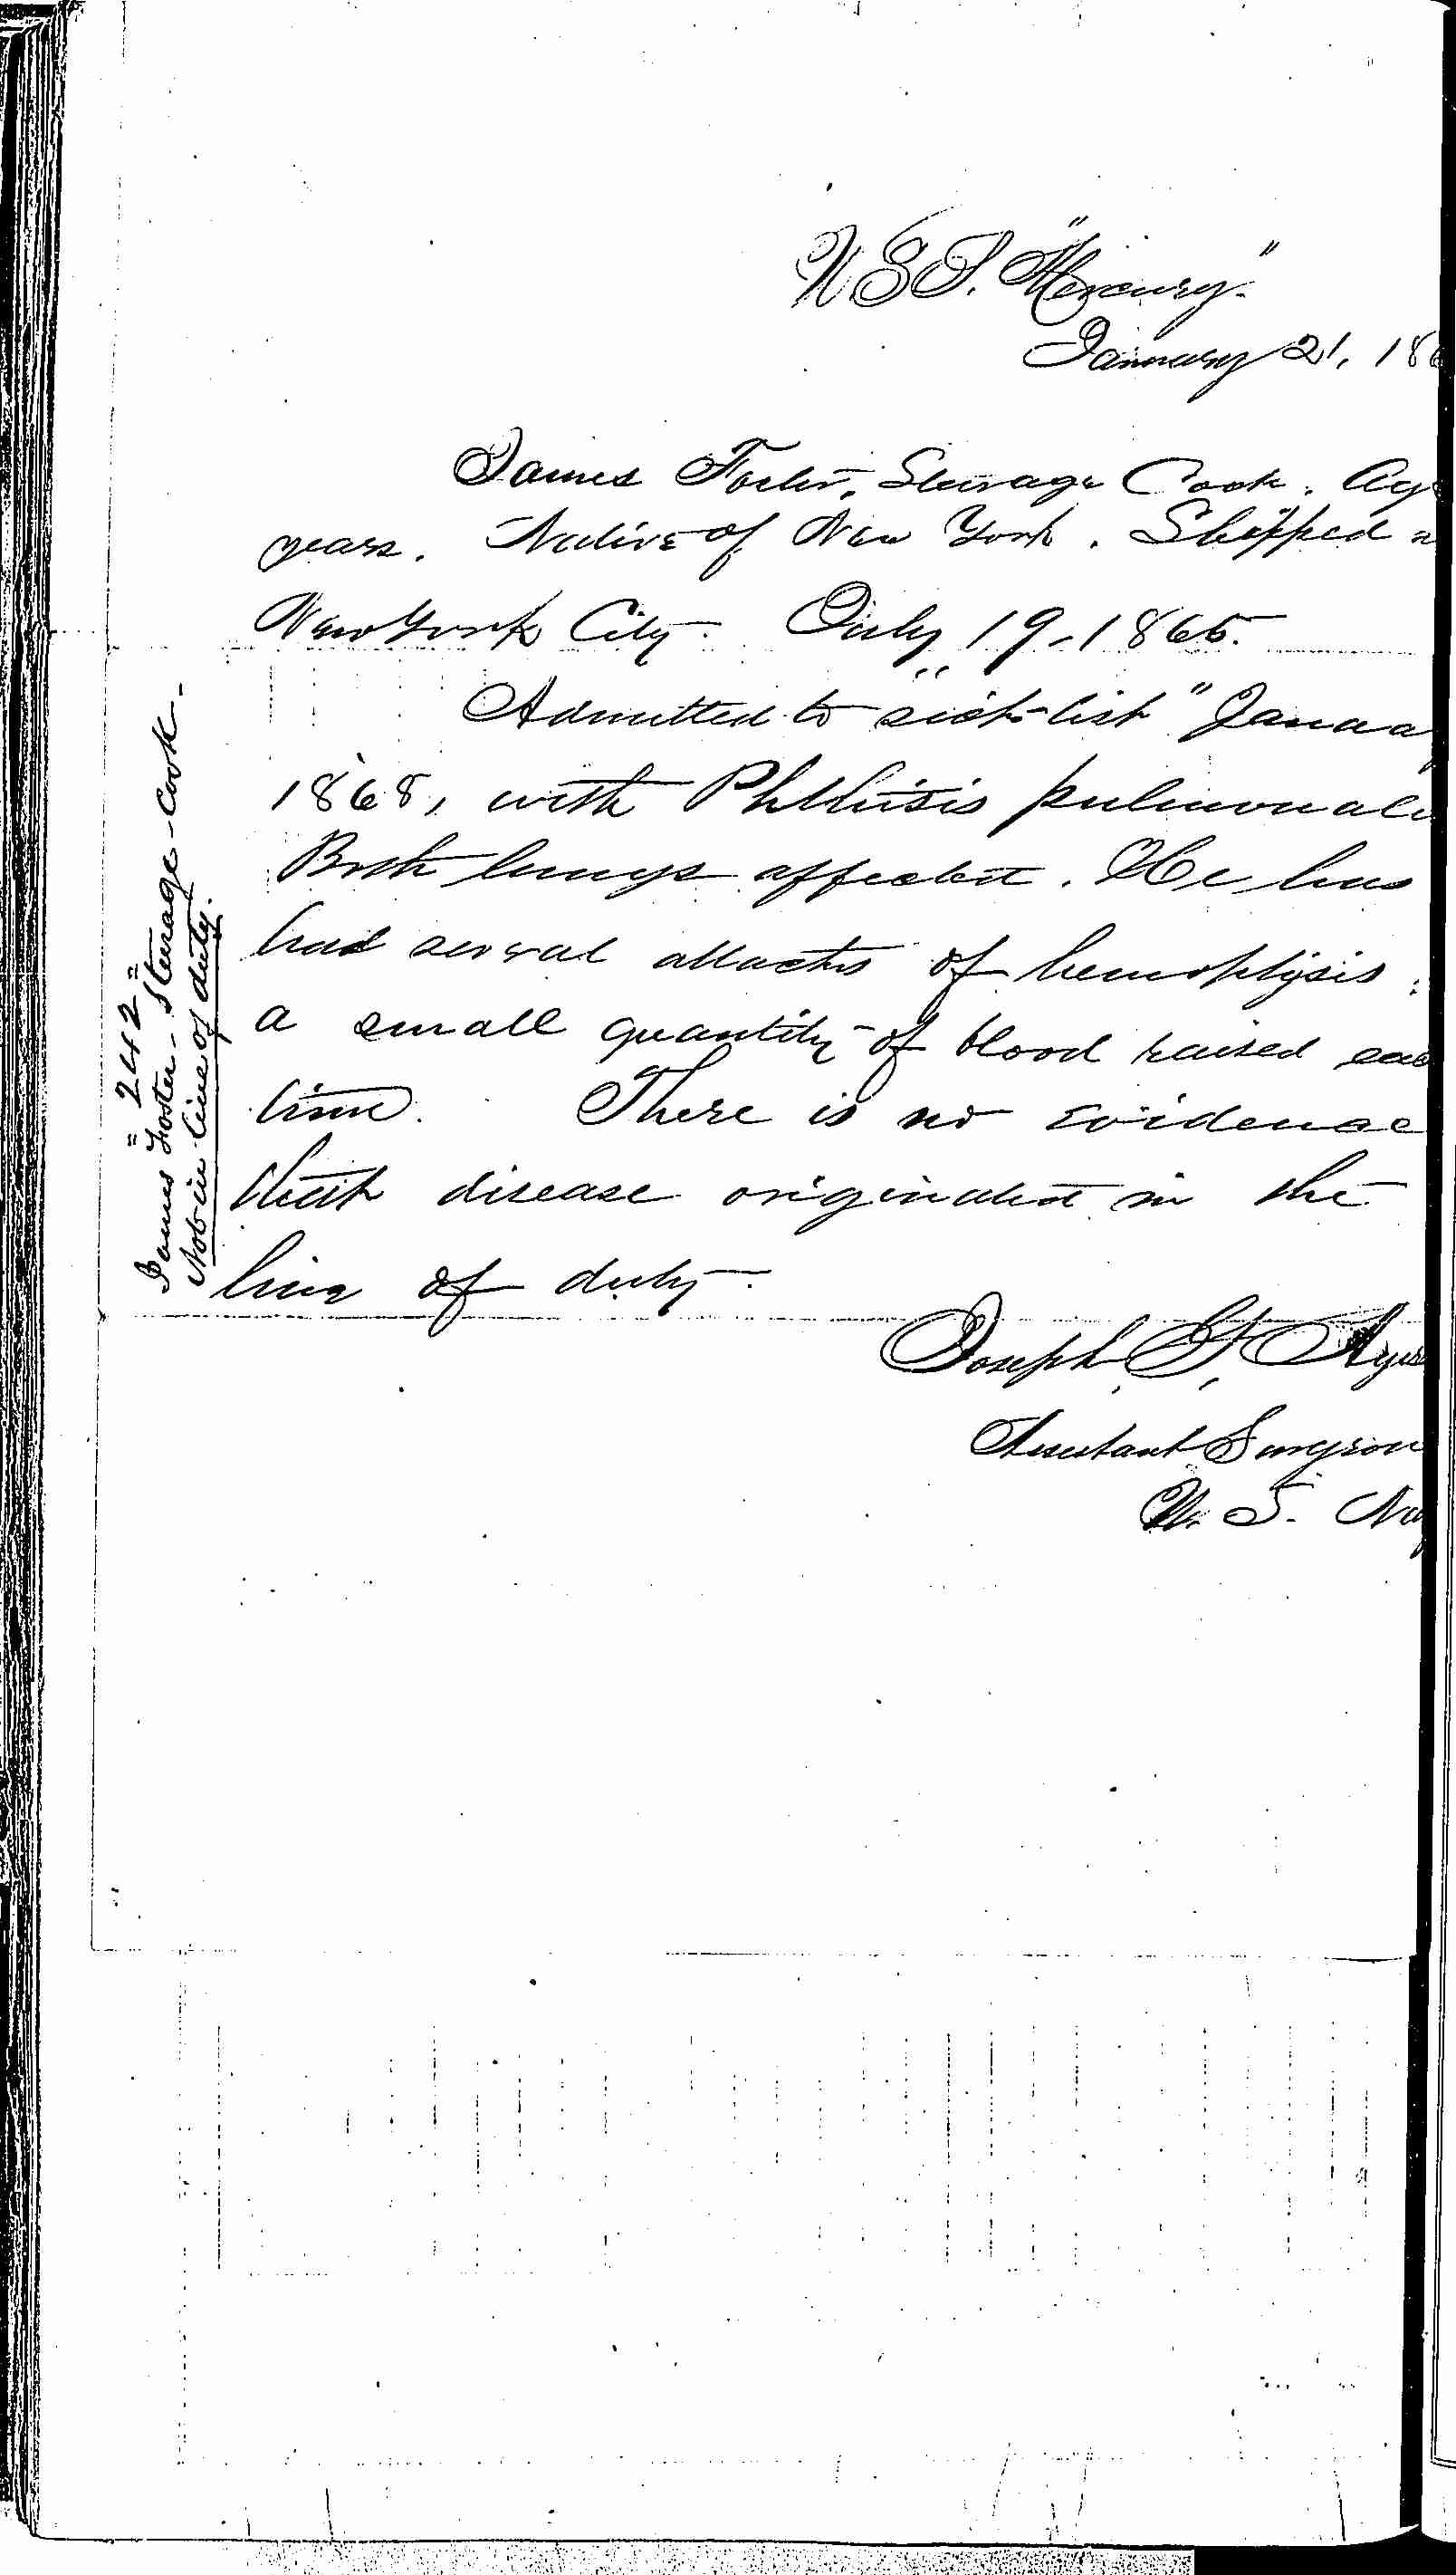 Entry for James Foster (page 2 of 2) in the log Hospital Tickets and Case Papers - Naval Hospital - Washington, D.C. - 1866-68